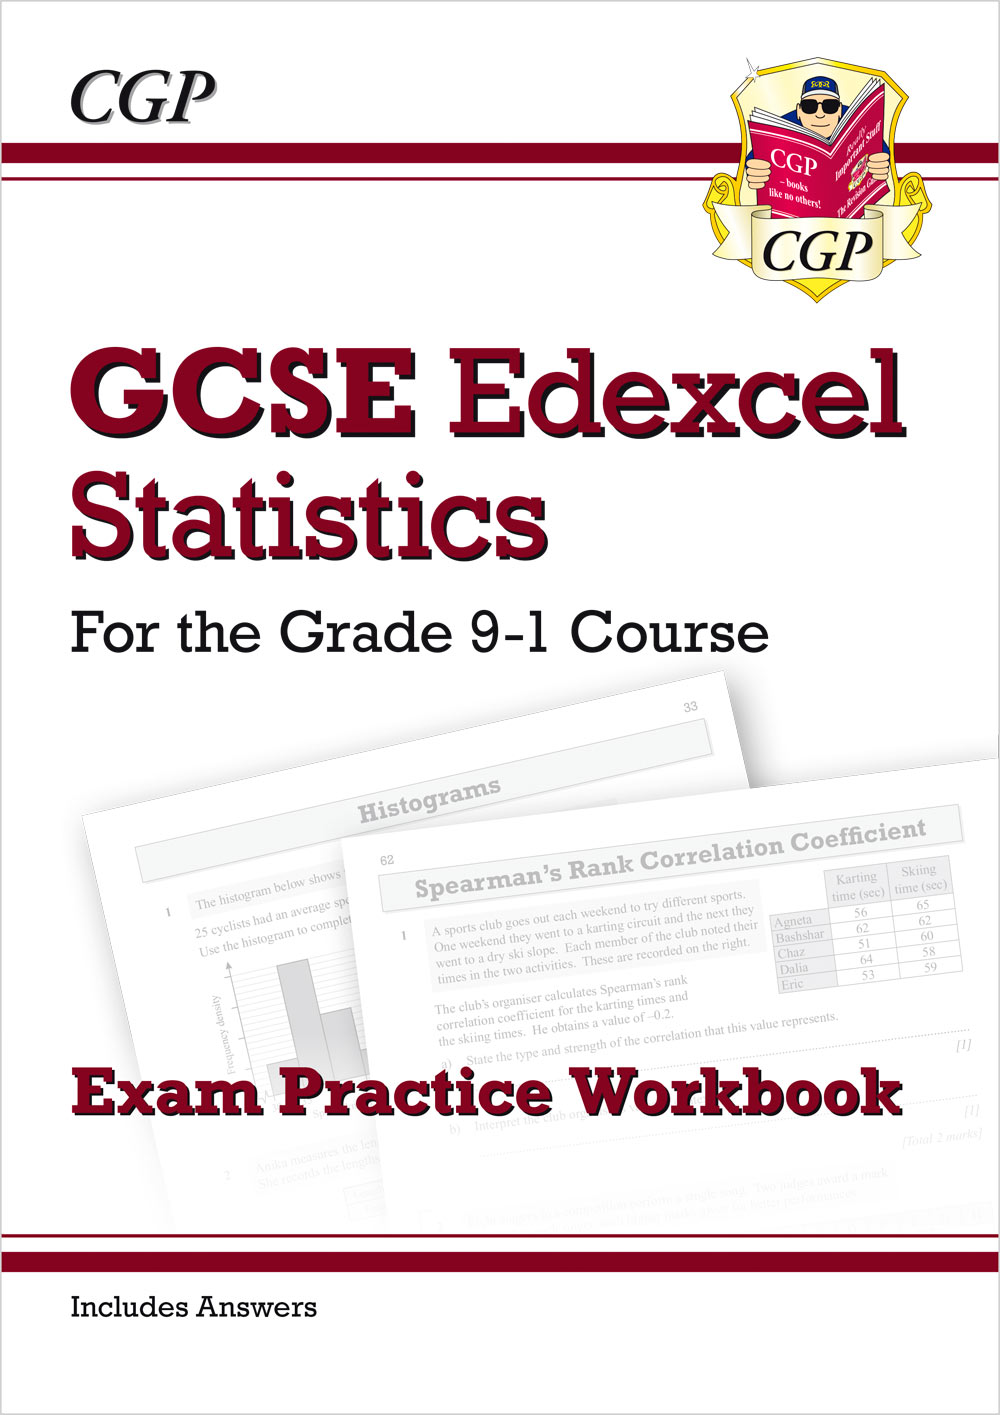 MSXQ41 - GCSE Statistics Edexcel Exam Practice Workbook - for the Grade 9-1 Course (includes Answers